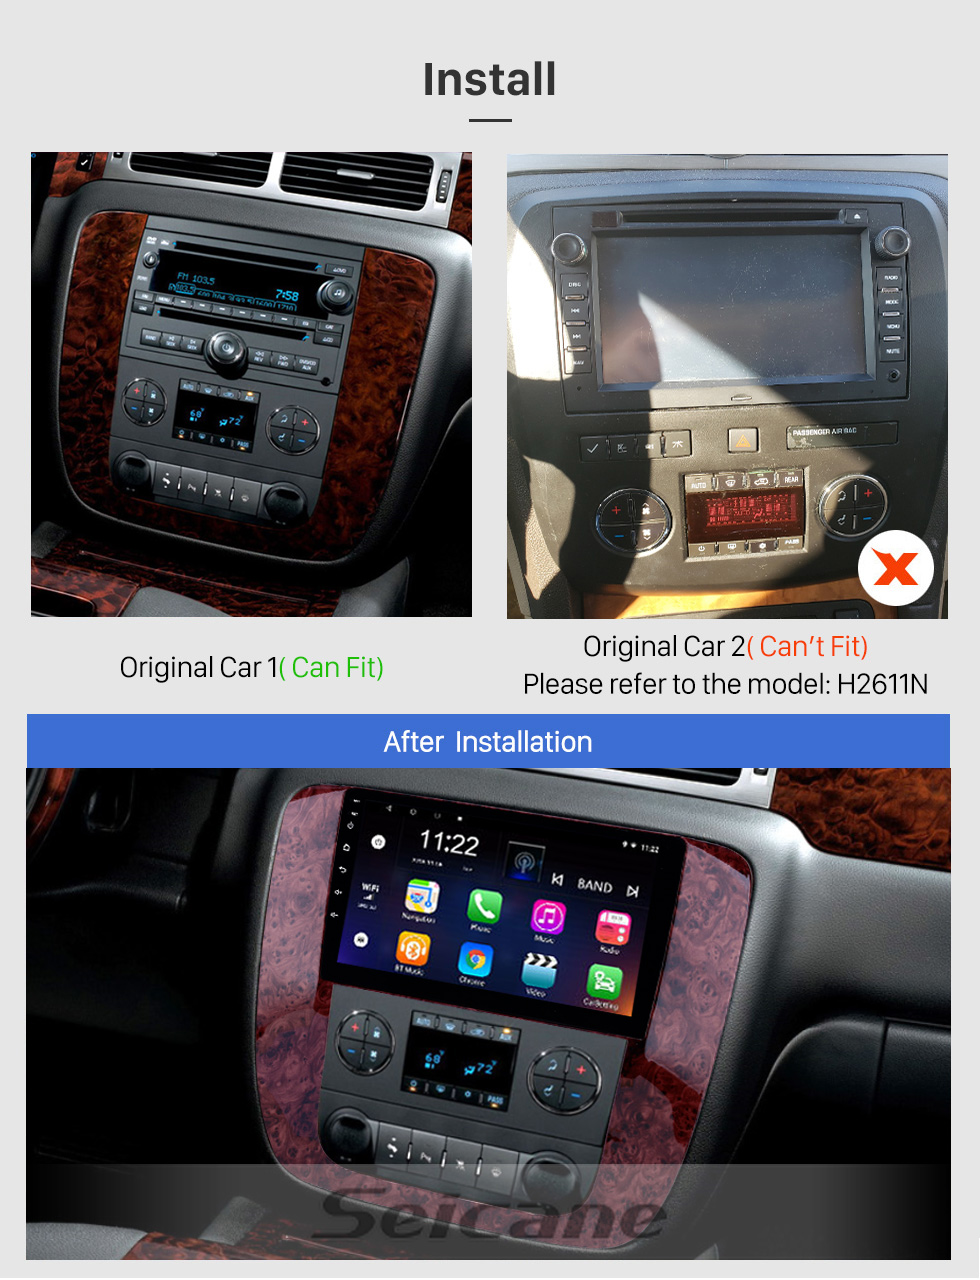 Seicane Android 10.0 Rádio de navegação GPS de 9 polegadas para 2007-2012 GMC Yukon / Acadia / Tahoe Chevy Chevrolet Tahoe / Suburbano Buick Enclave com HD Touchscreen Suporte Bluetooth OBD2 Carplay